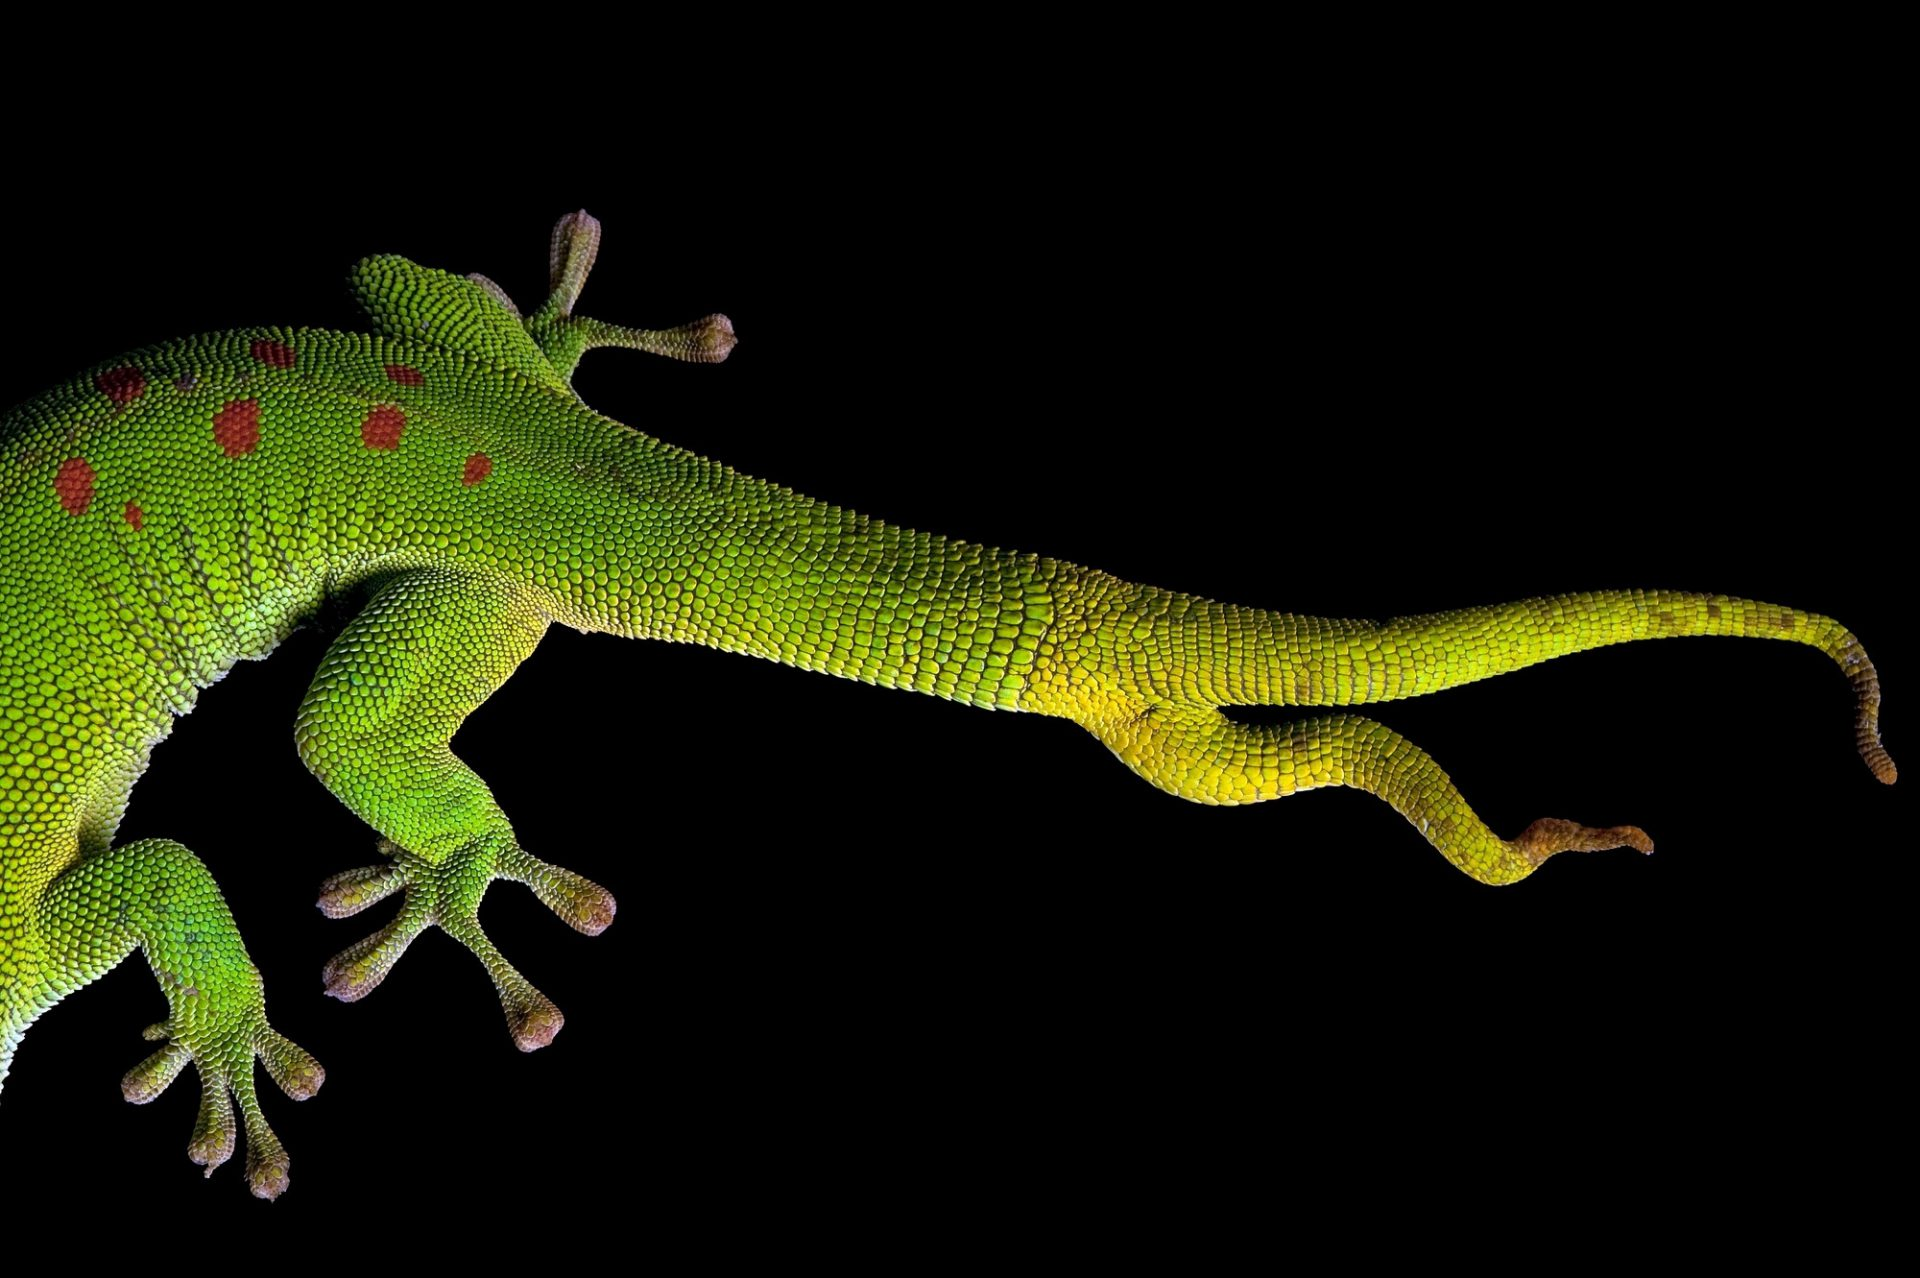 The tail of a giant day gecko (Phelsuma madagascariensis grandis) from a private collection.